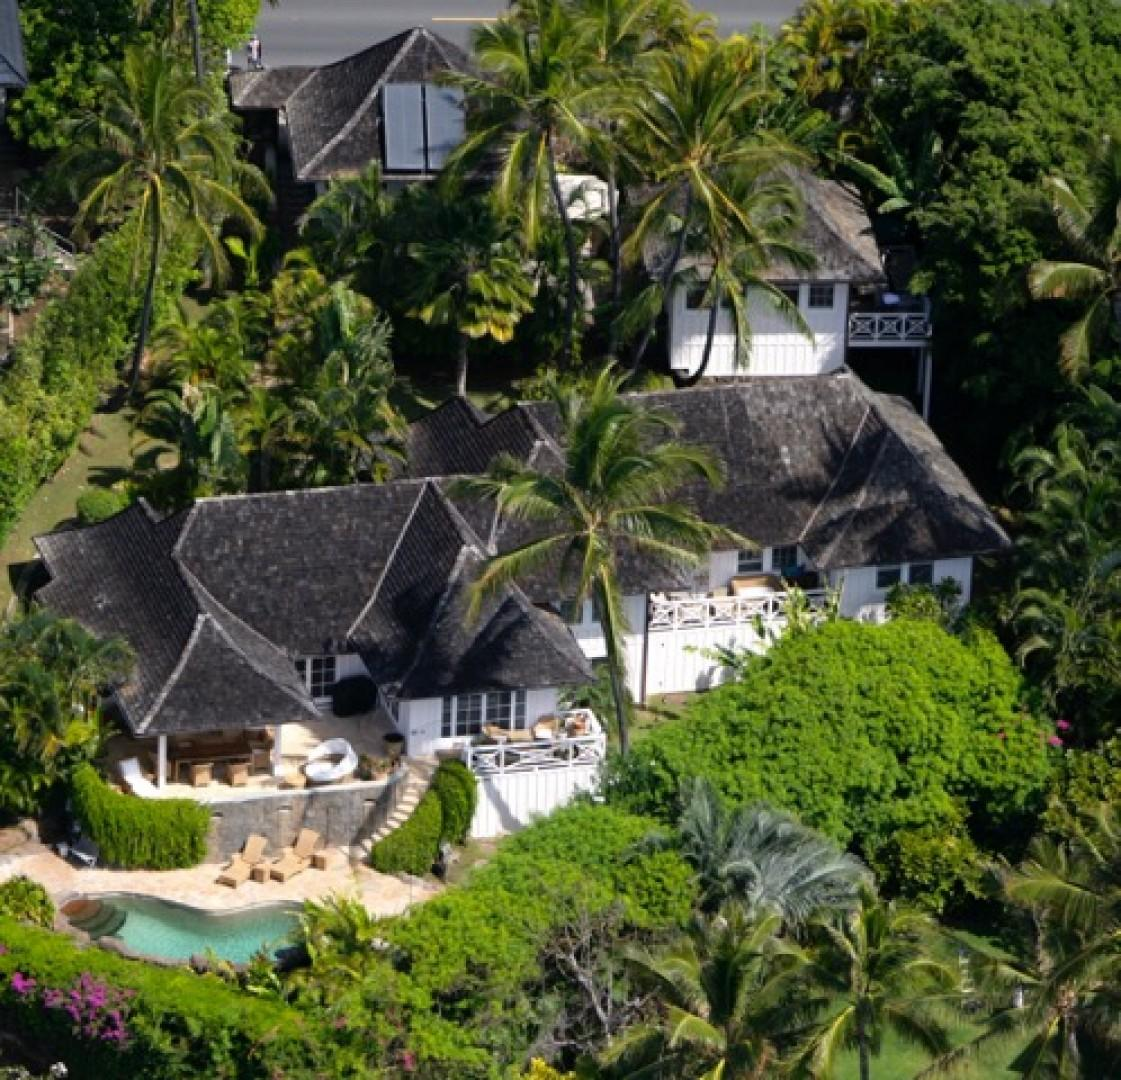 Aerial view of Estate with Main House and two Bungalows